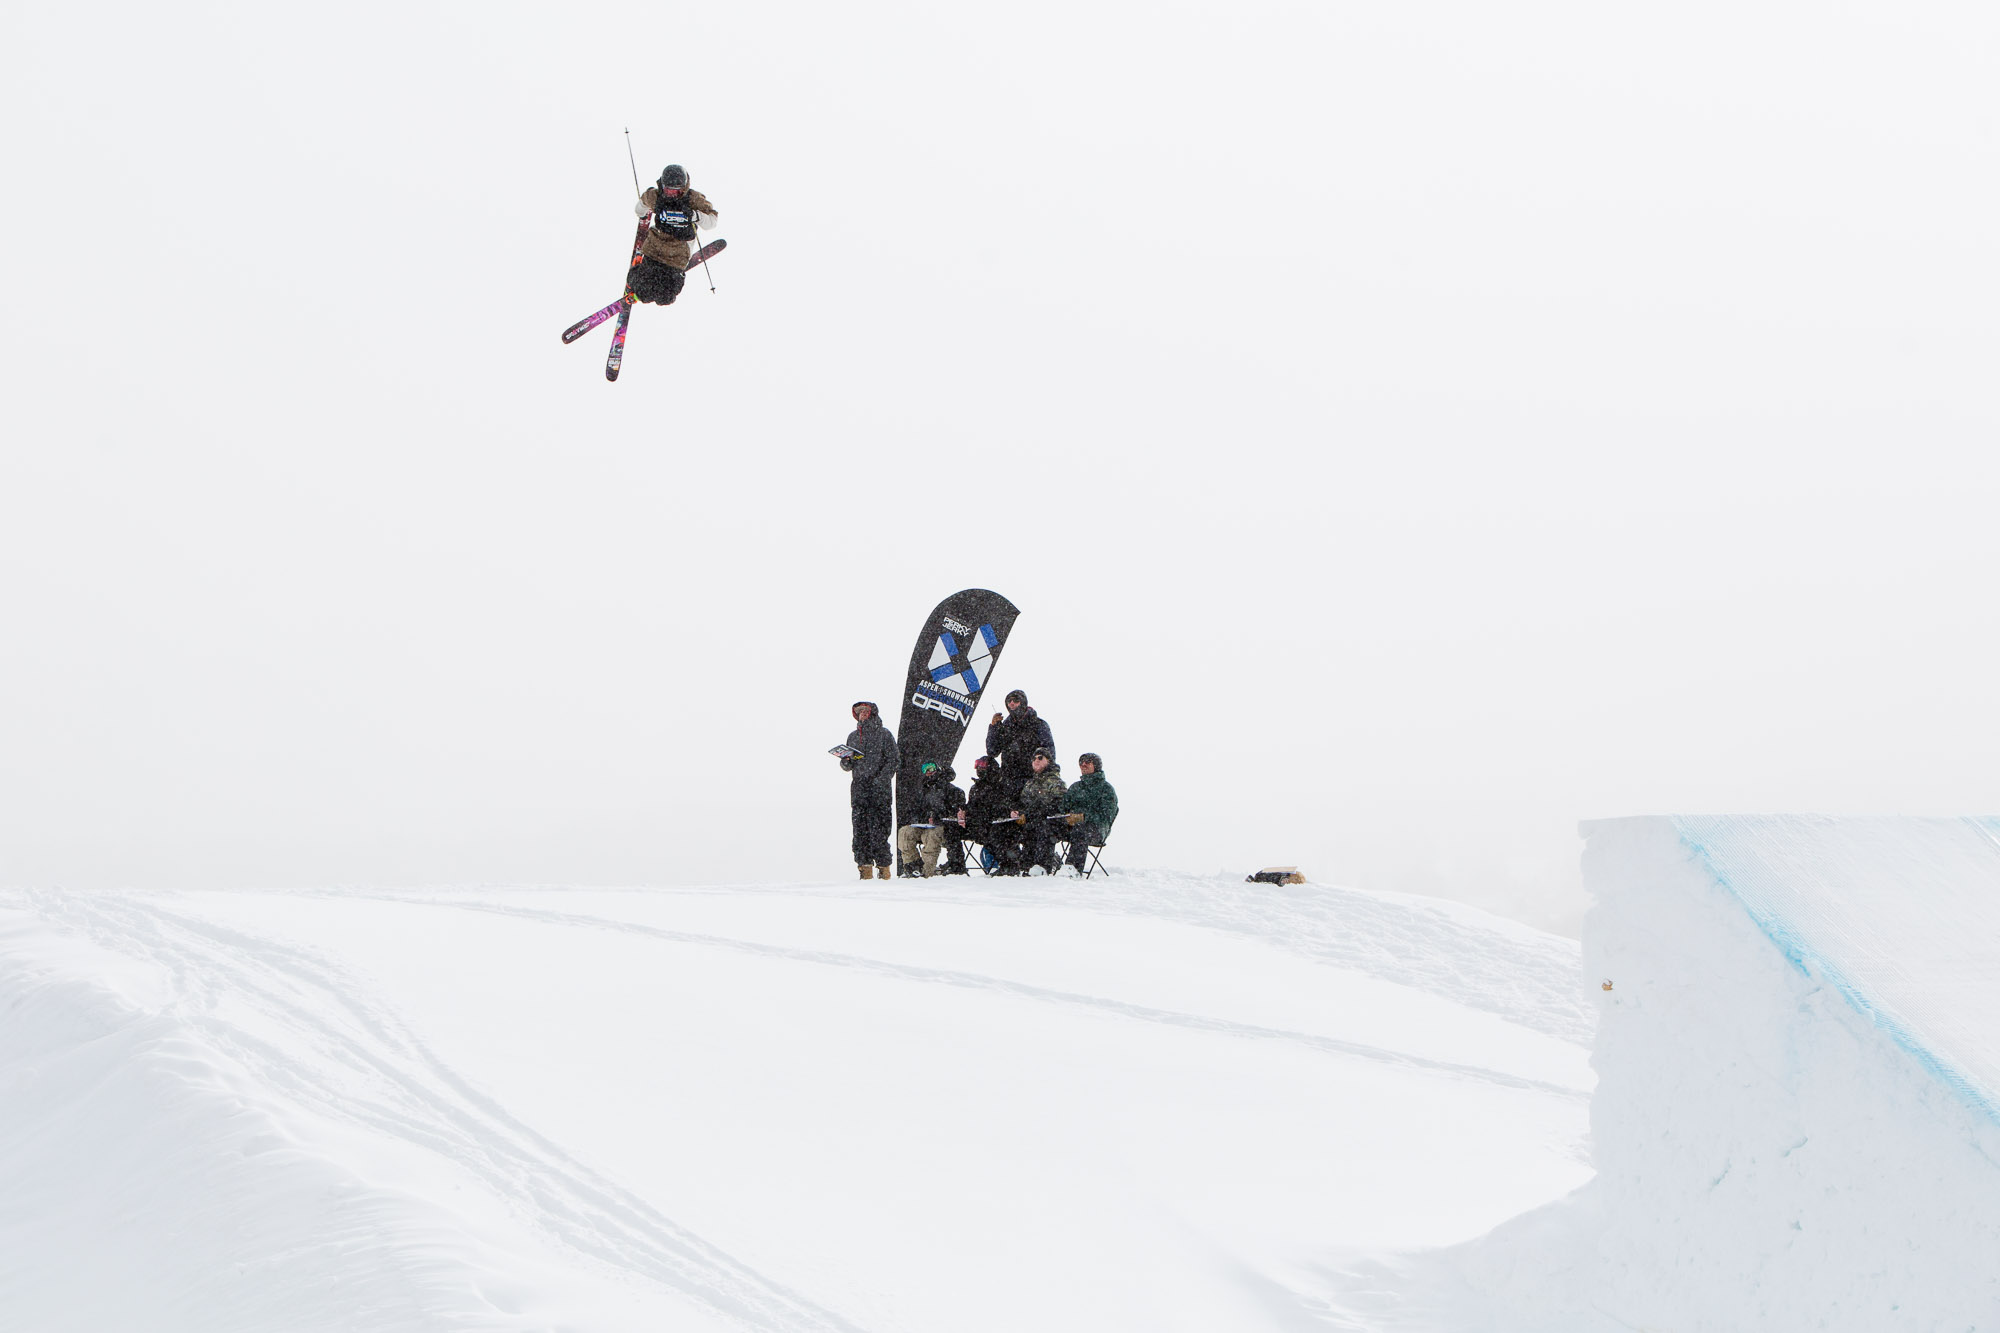 Flying over the judges